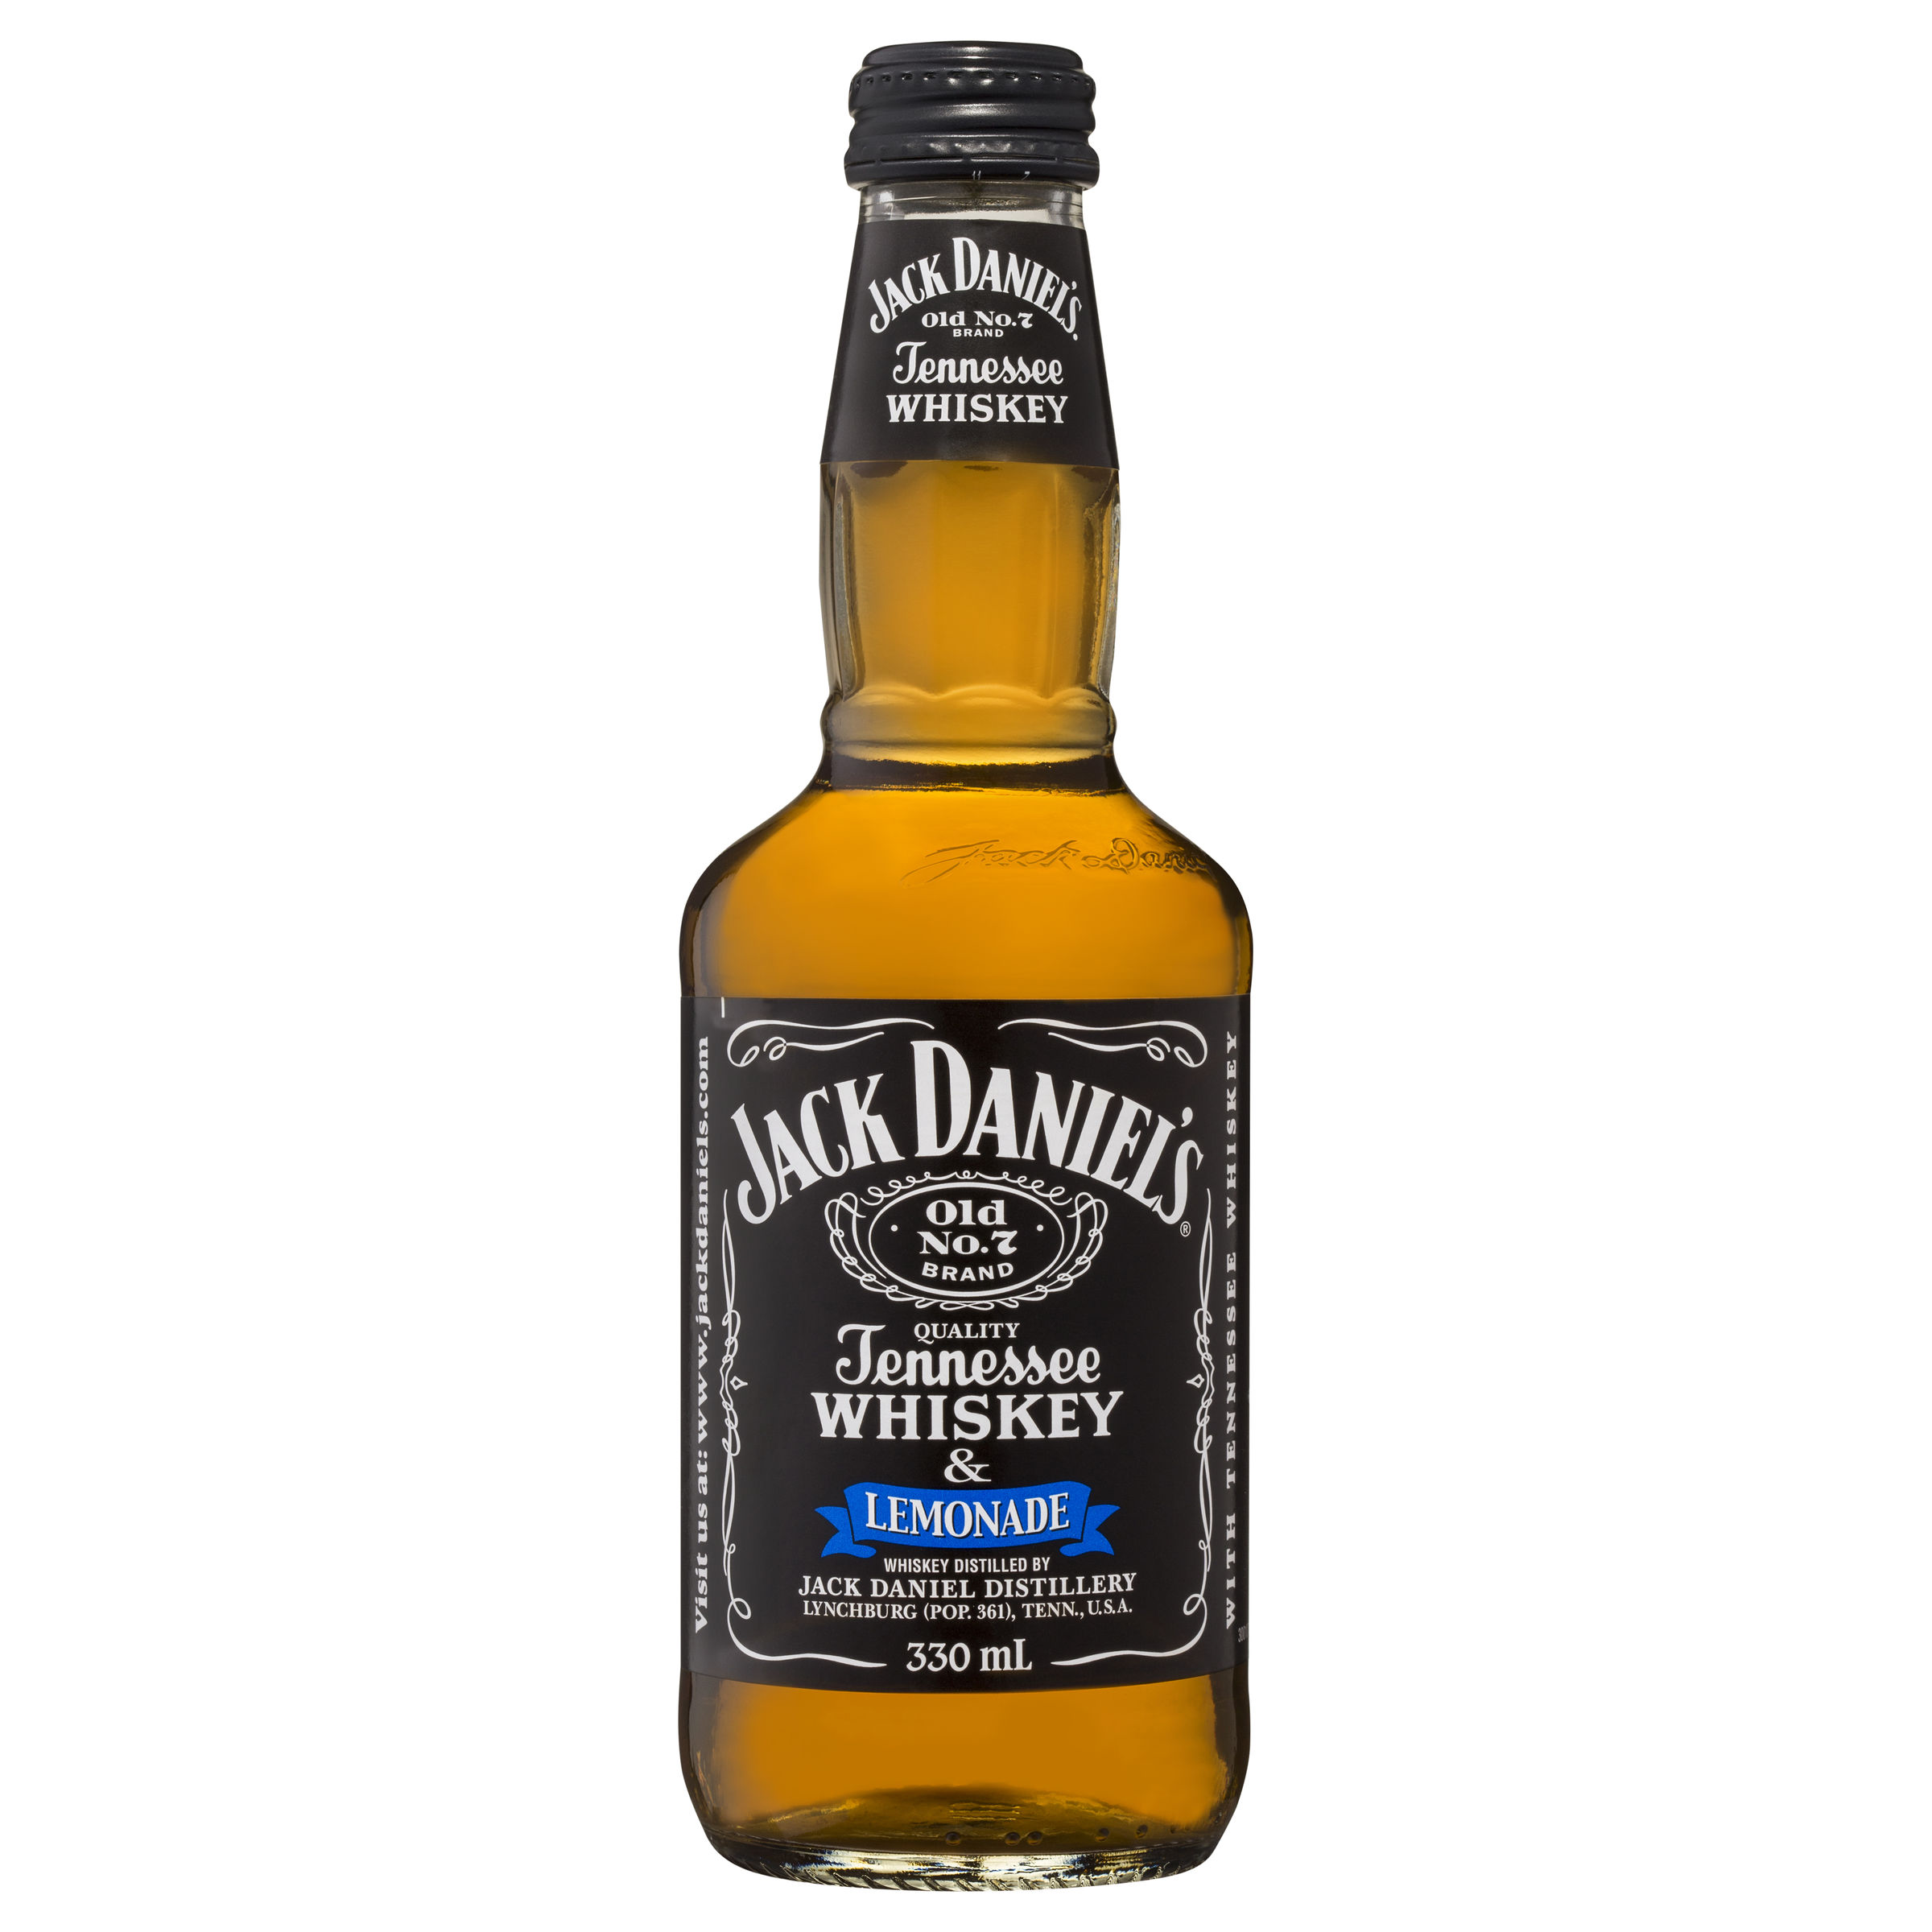 JACK DANIELS & LYNCHBURG LEMONADE BOTTLE